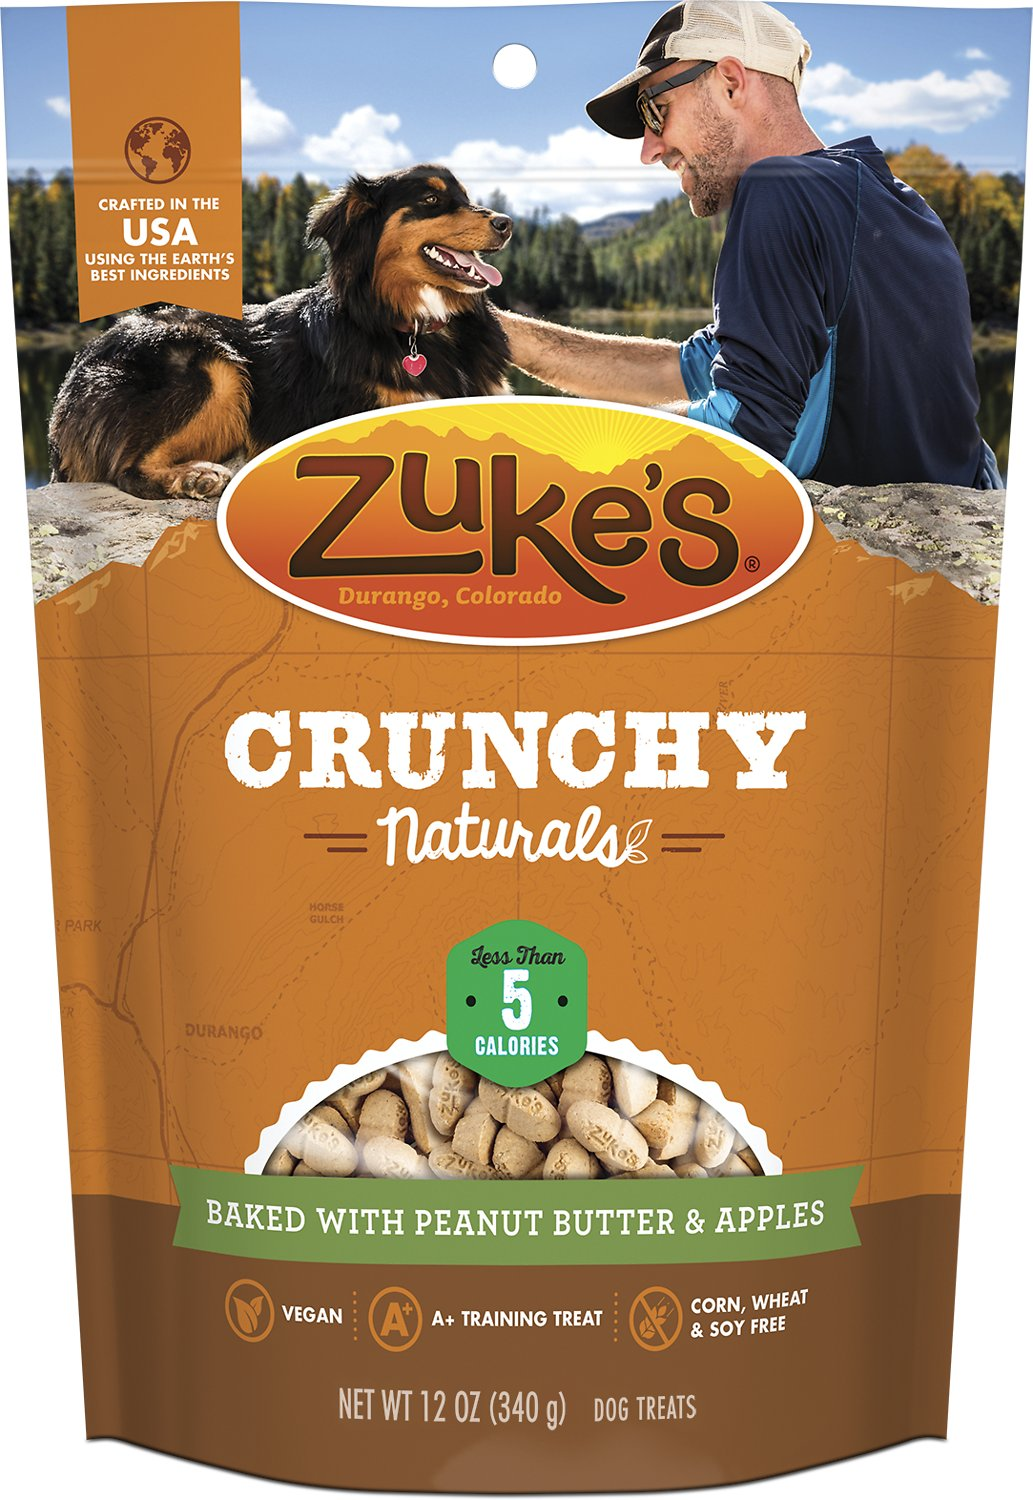 Zuke's Crunchy Naturals 5s Baked With Peanut Butter & Apples Dog Treats, 12-oz bag